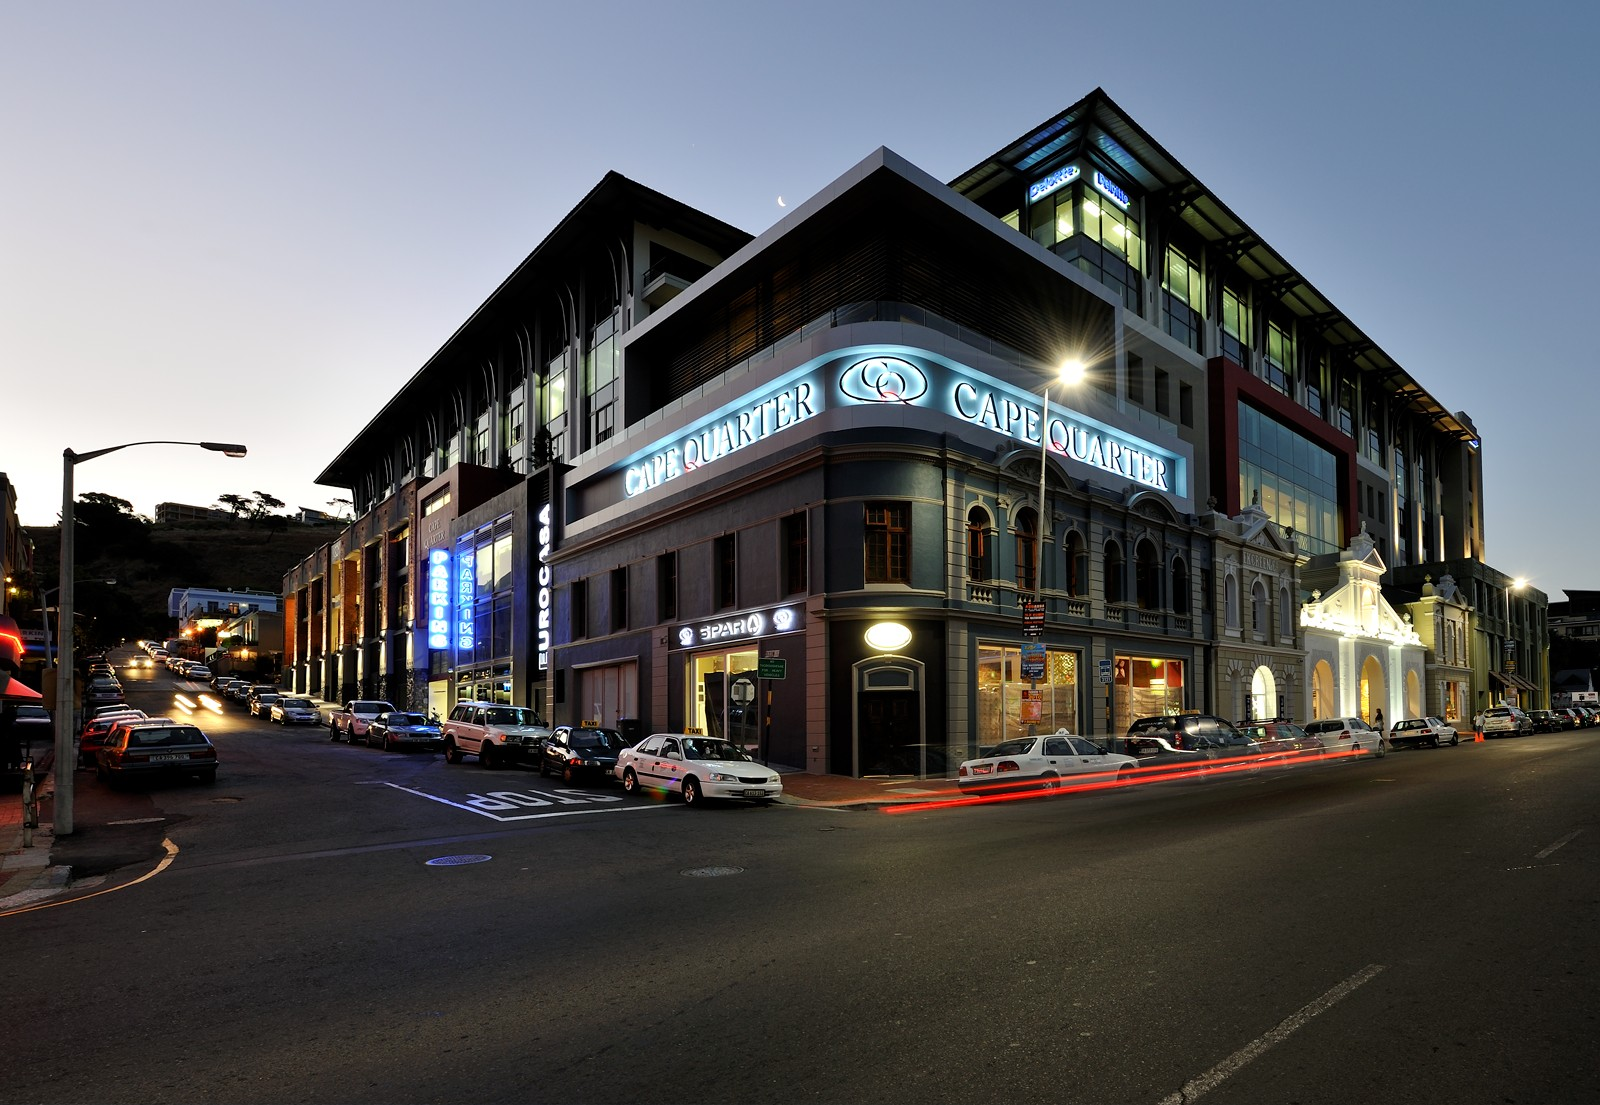 Lights by Linea - Cape Quarter